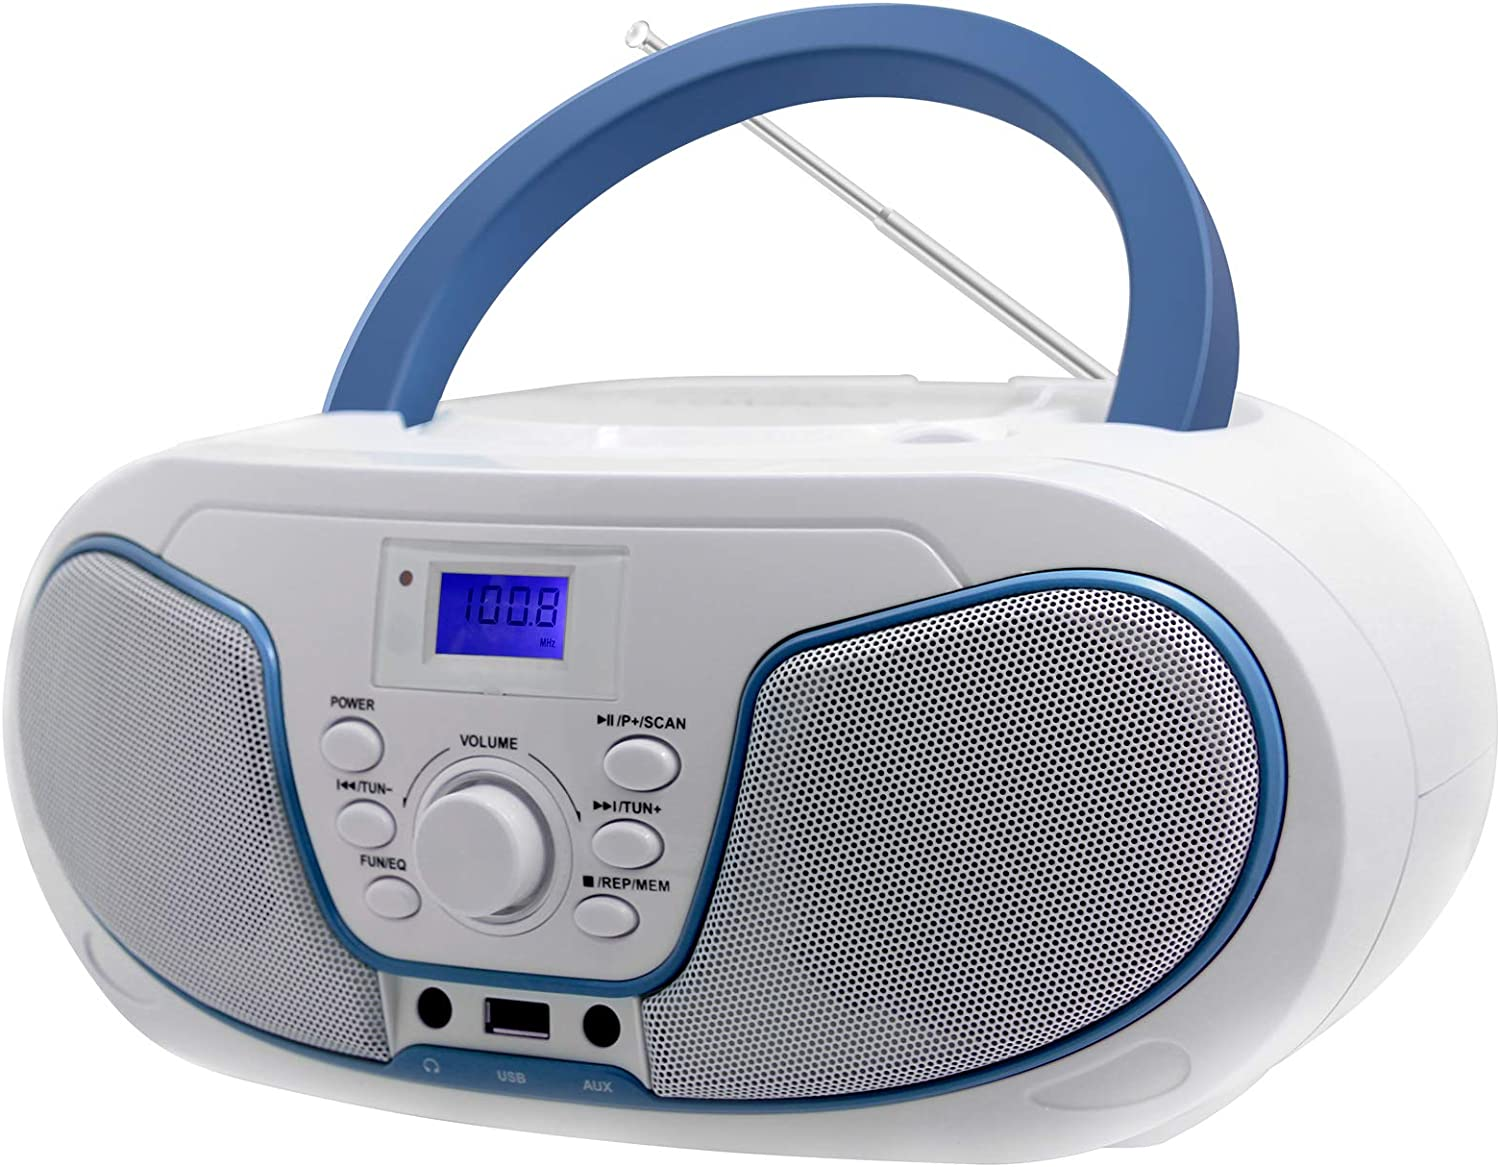 Portable Radio Boombox, LONPOO CD Player Stereo Audio with Bluetooth, USB, AUX-in, Headphone Output (White)